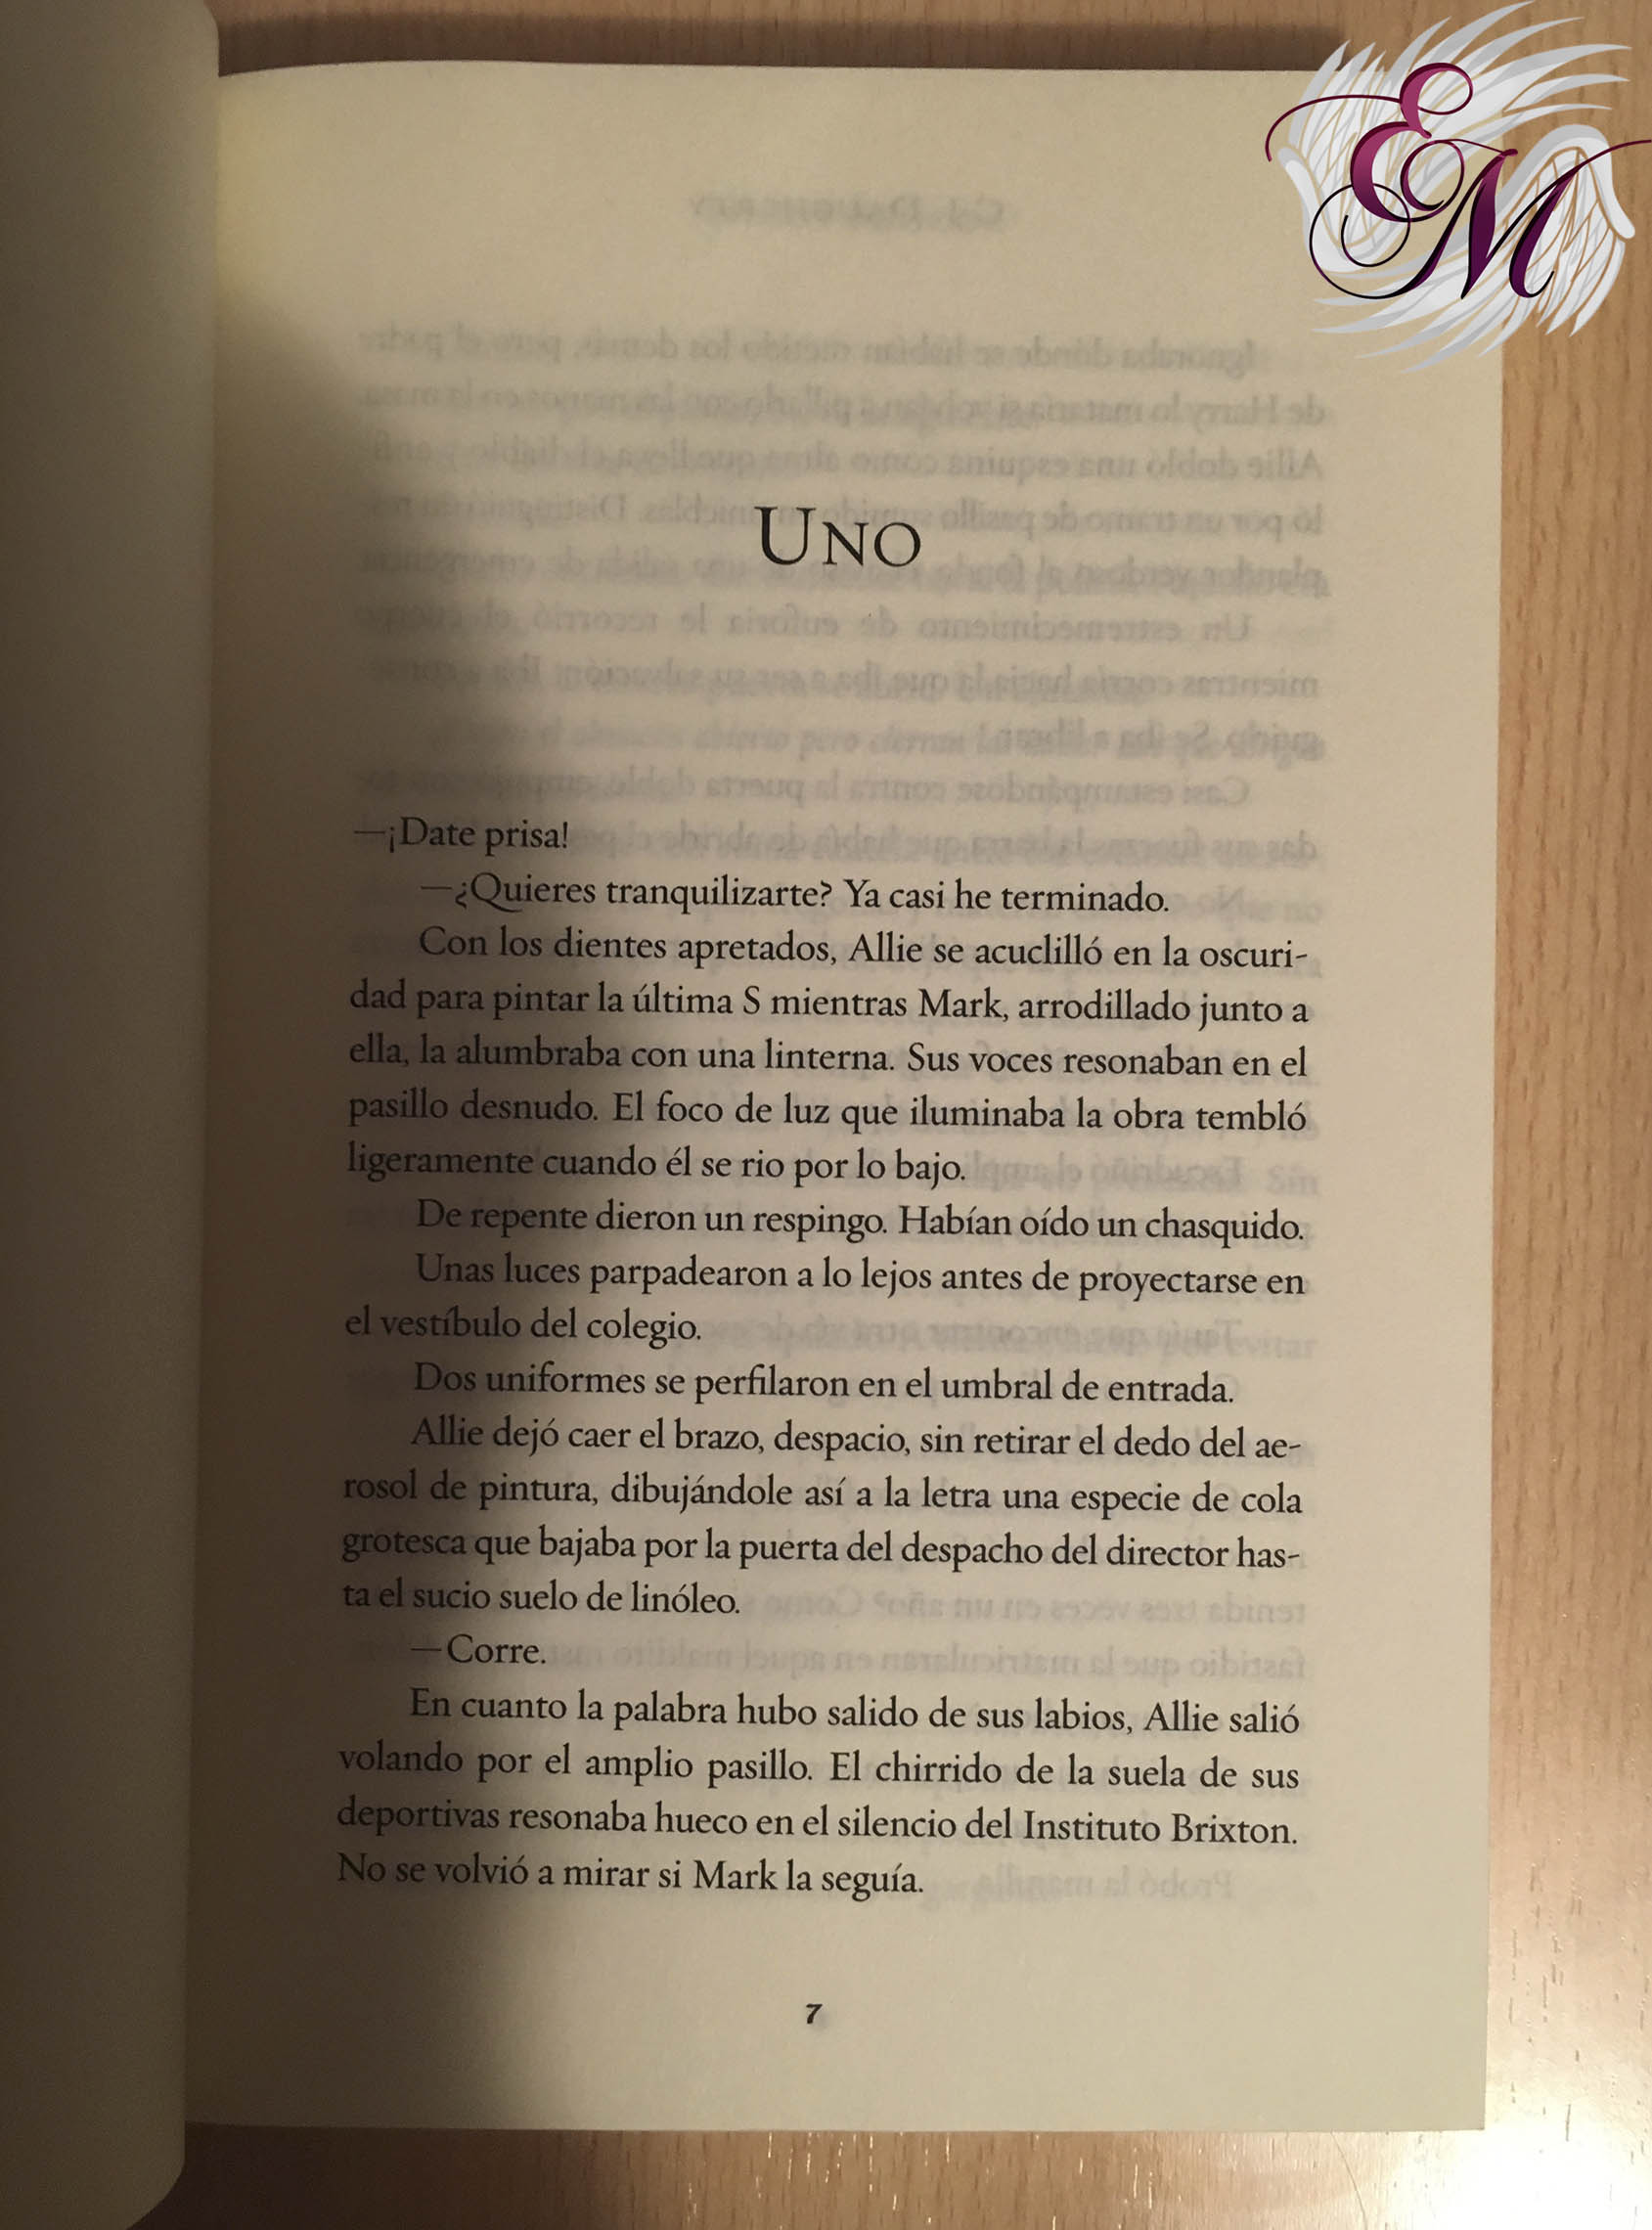 El legado, de CJ Daugherty - Reseña